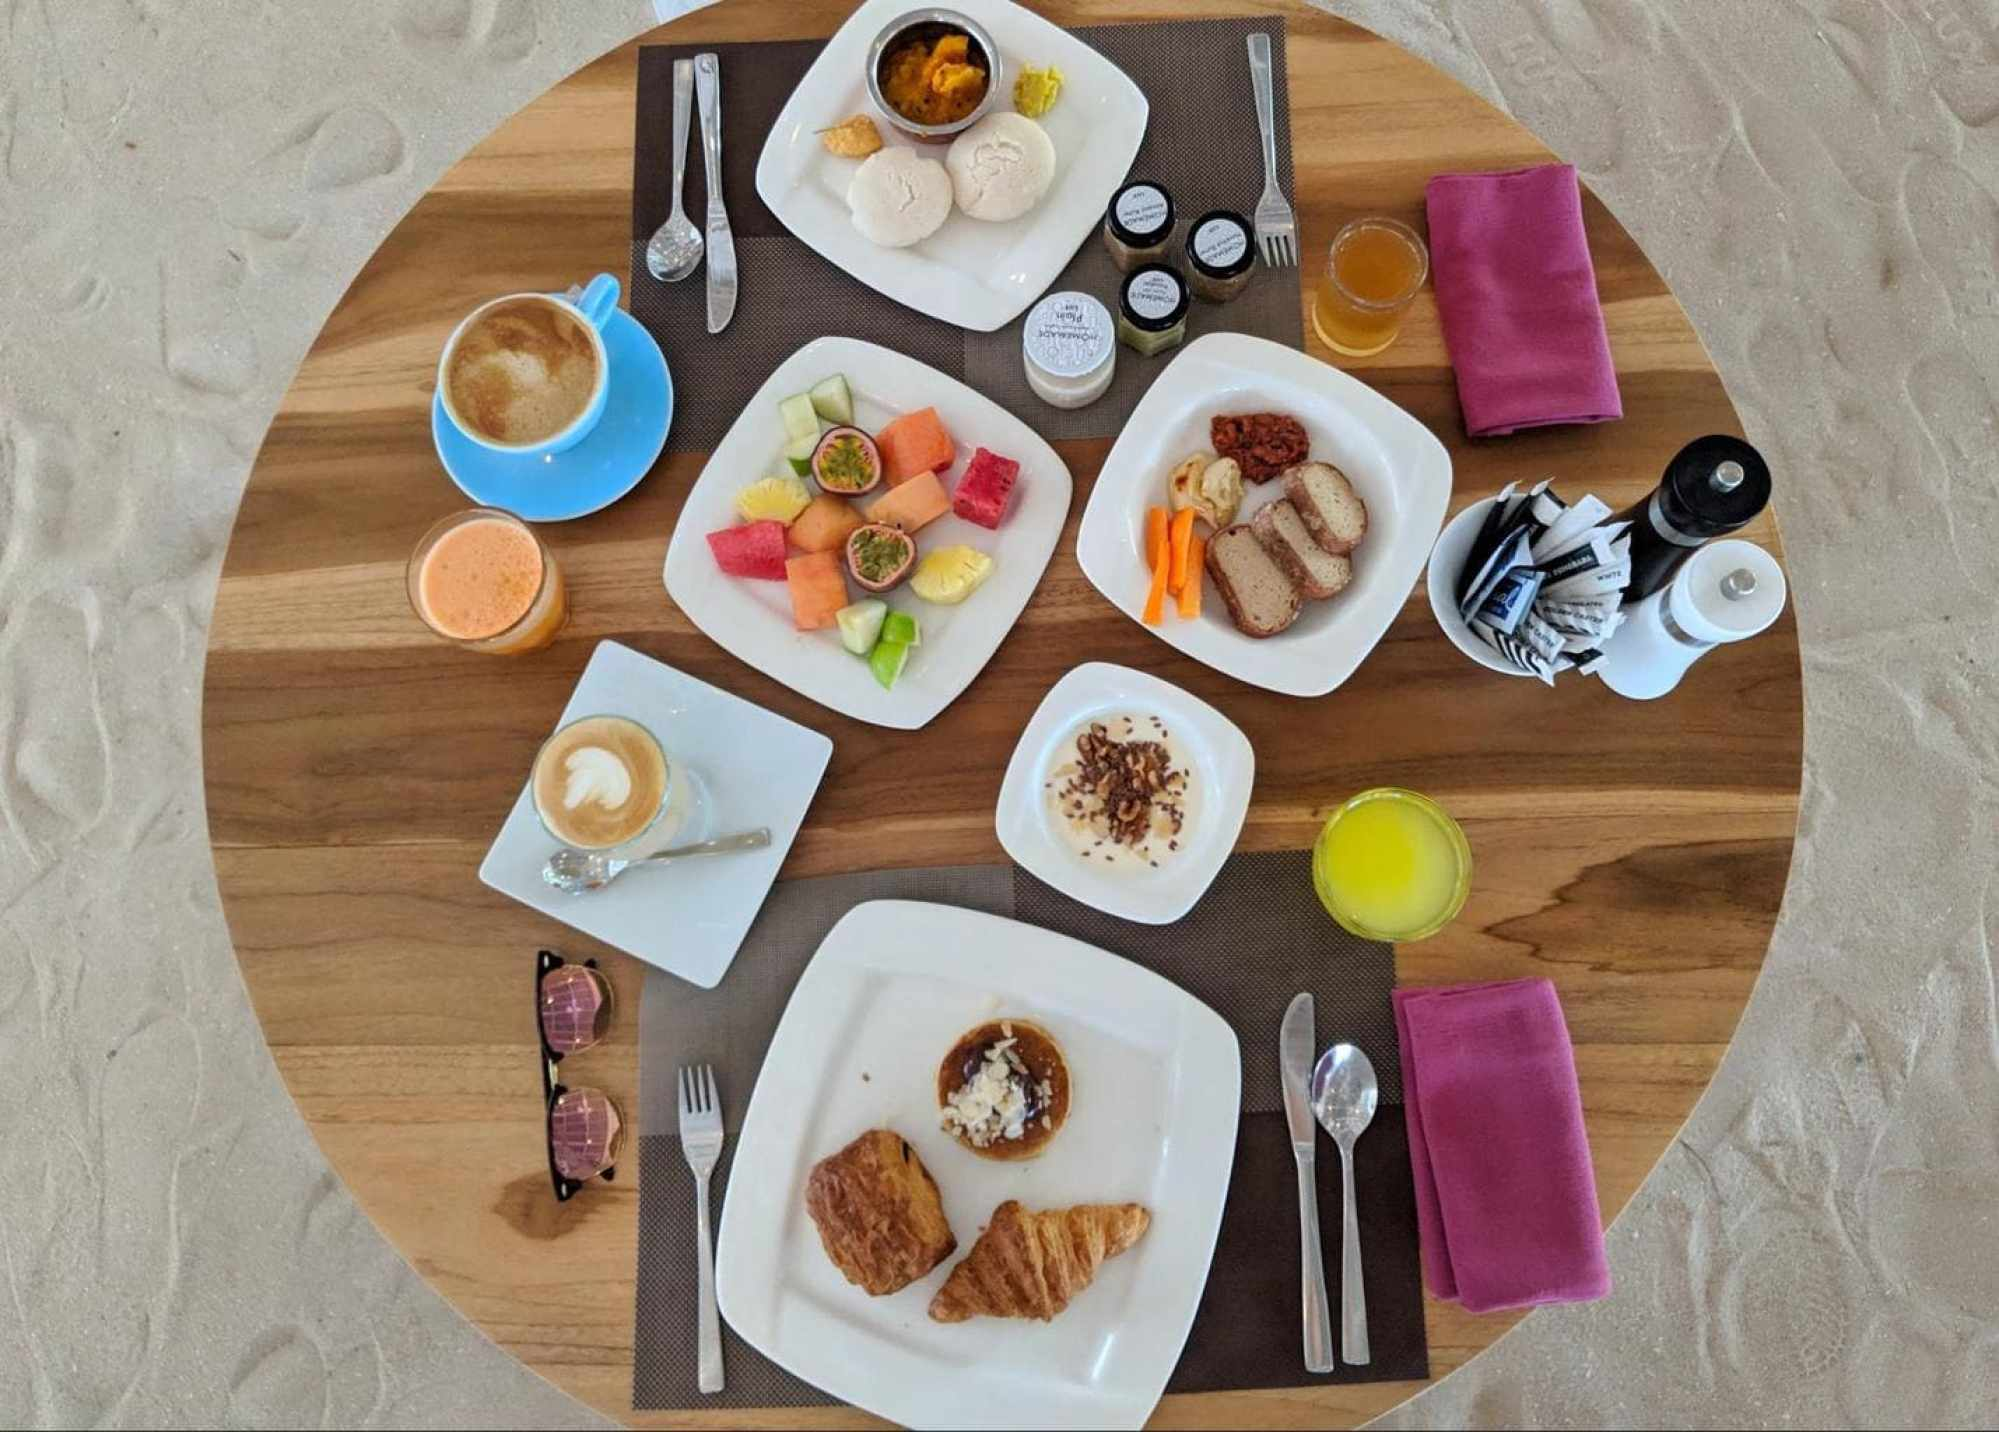 Our breakfast spread